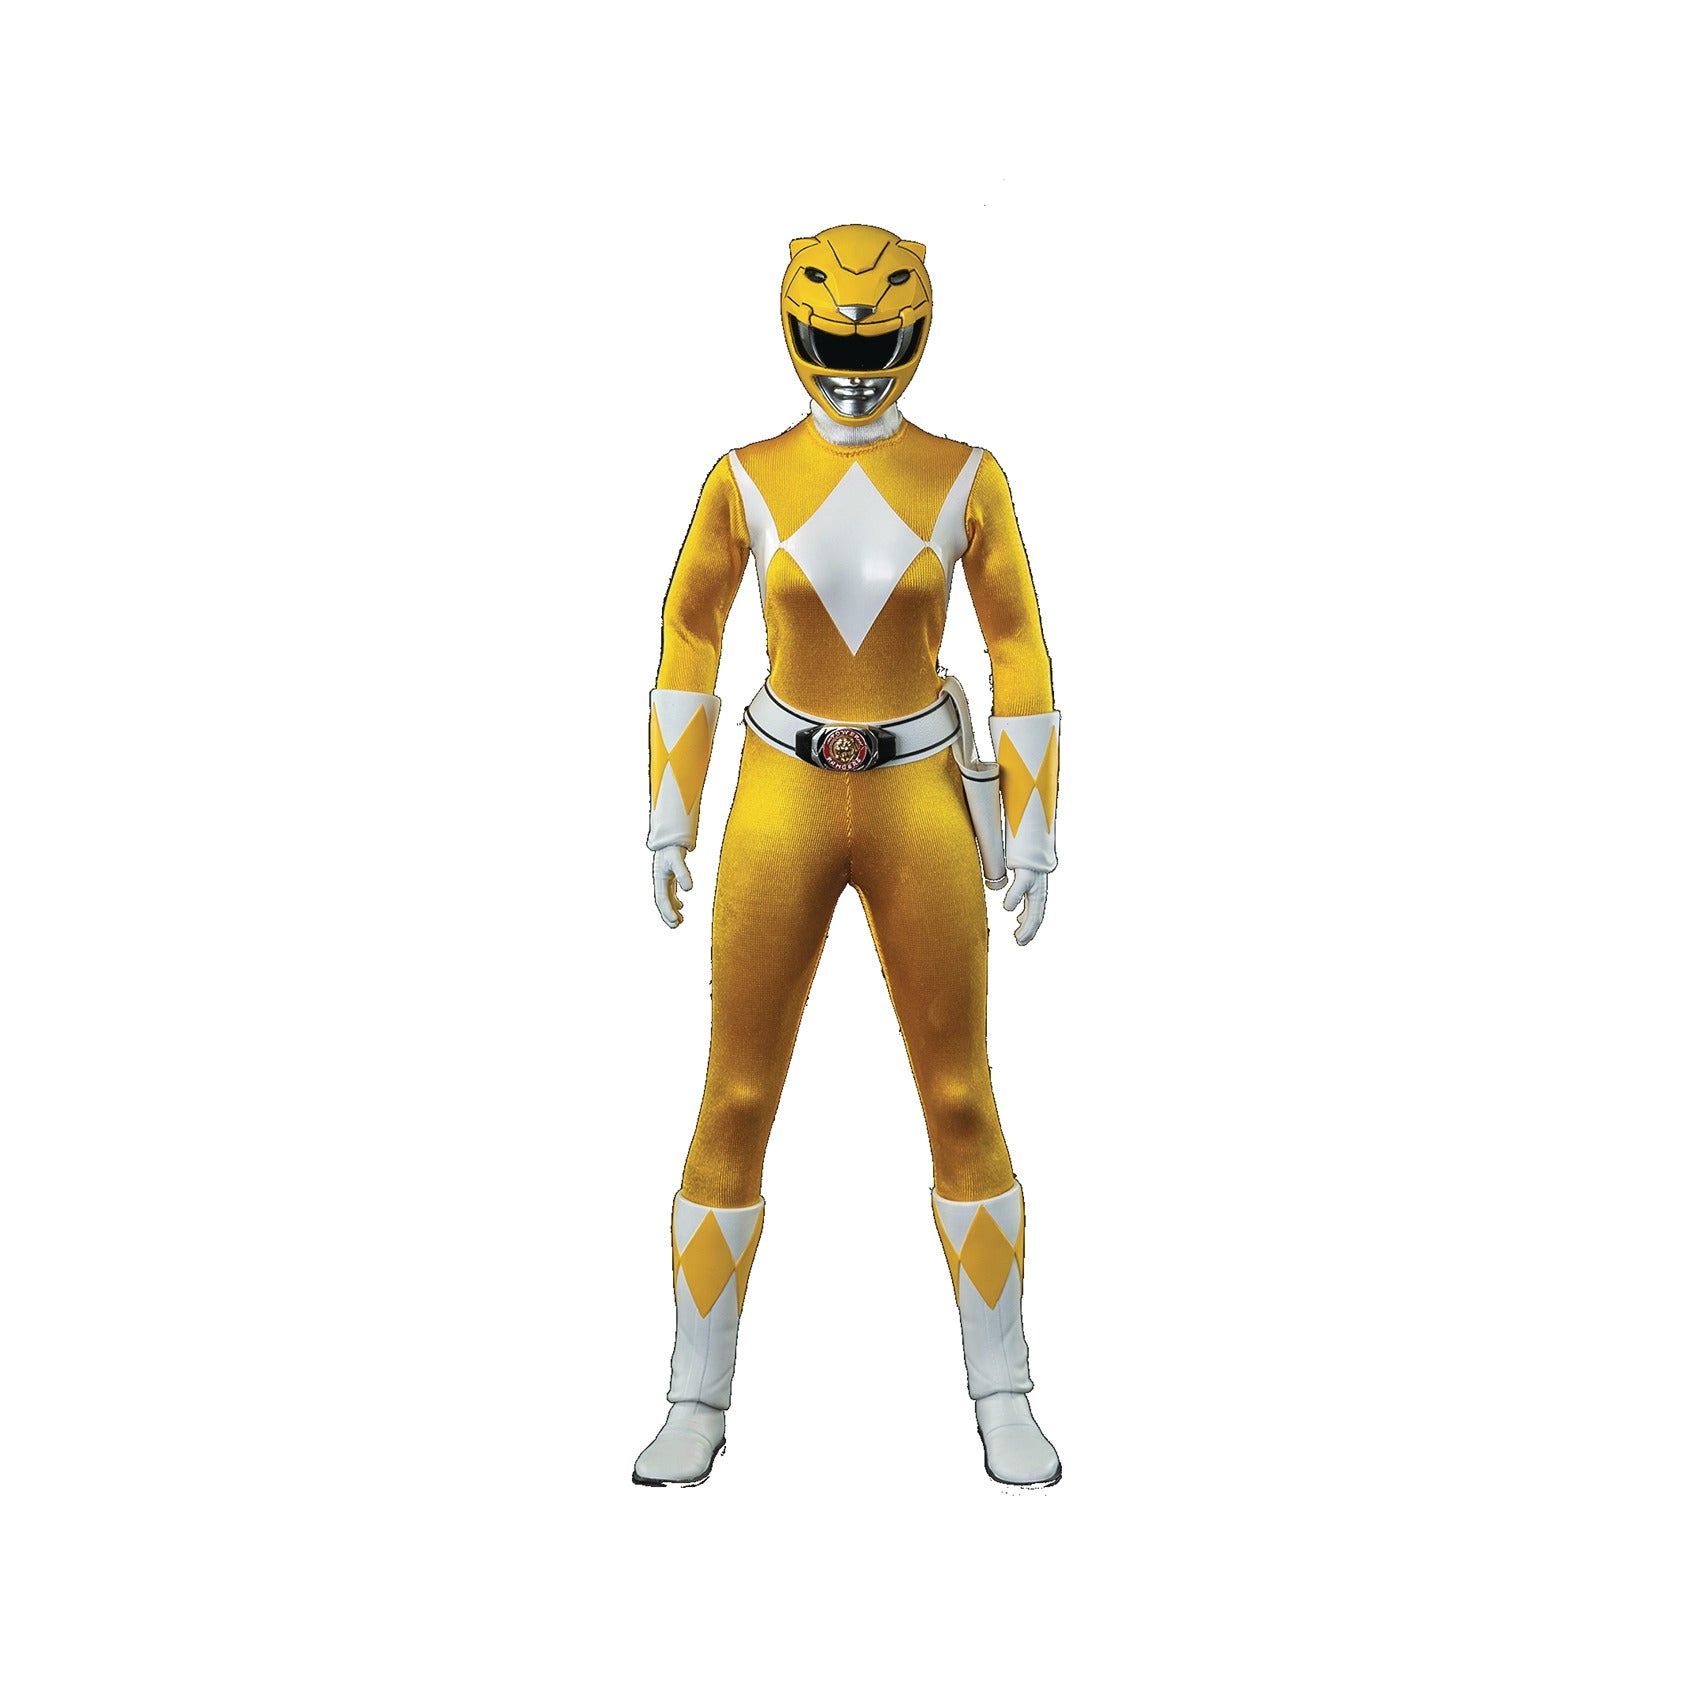 Mighty Morphin Power Rangers Yellow Ranger 1/6 Scale Action Figure